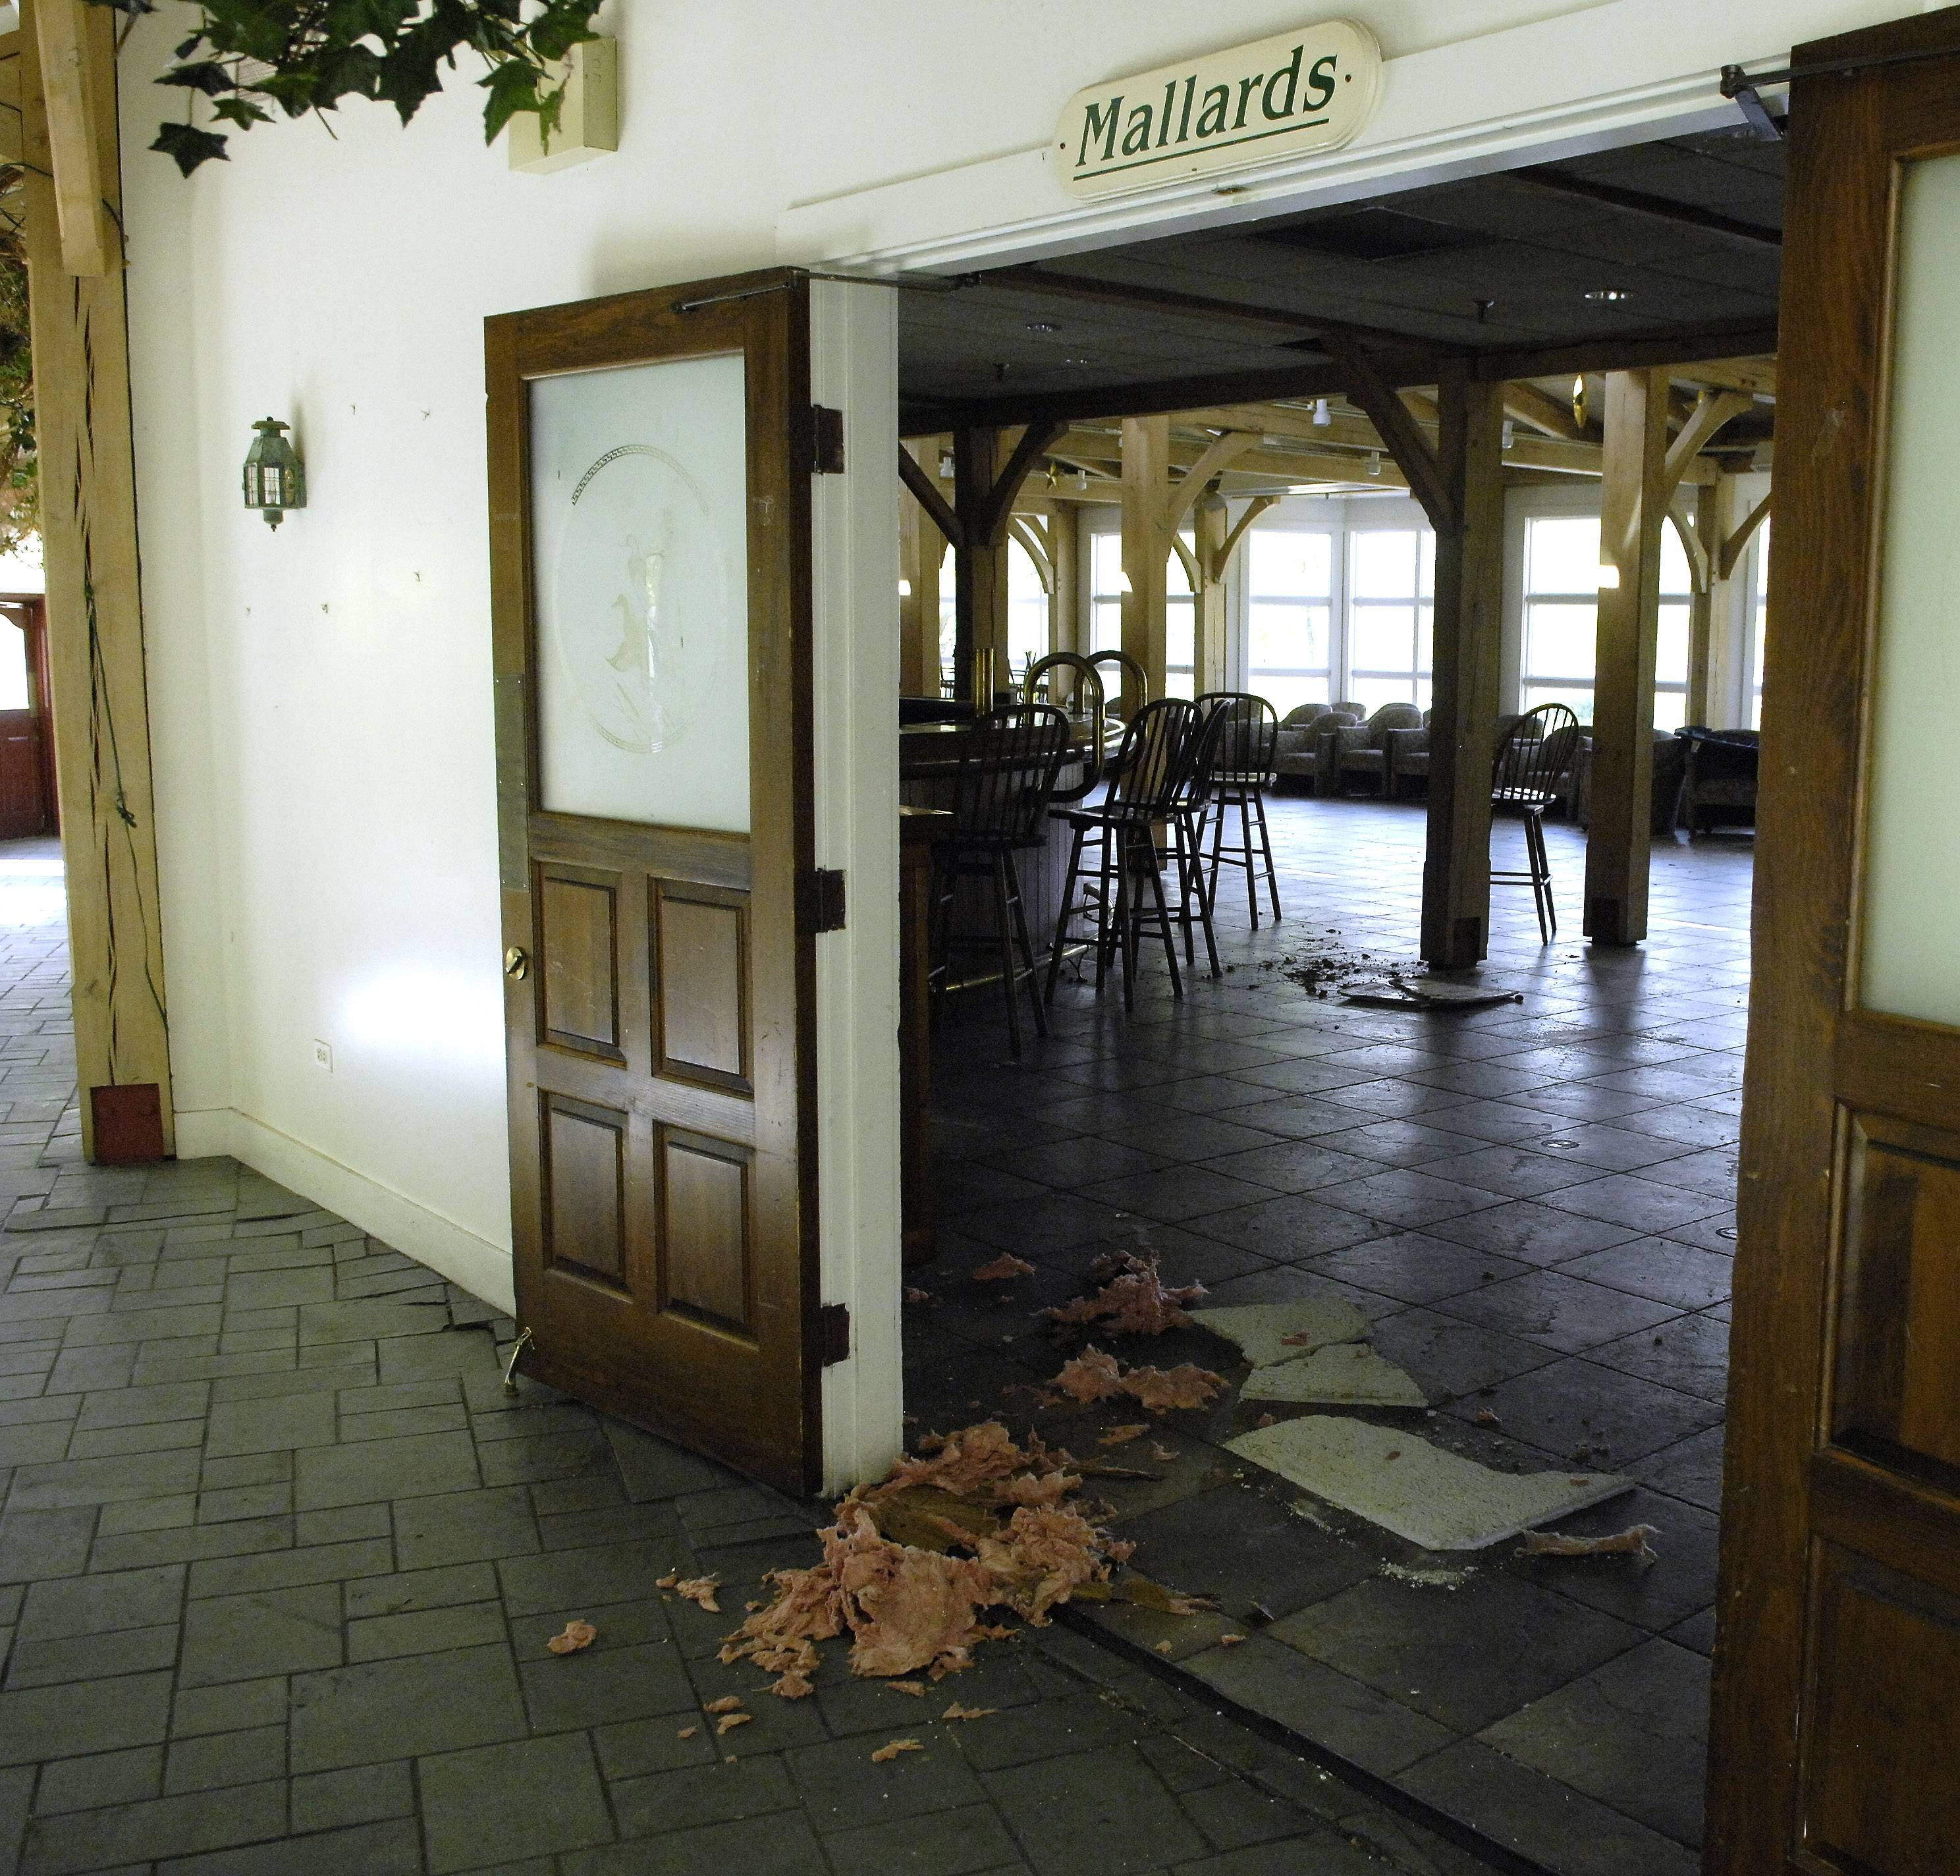 Ceiling tiles at the Mill Race Inn in Geneva were chewed up, possibly by raccoons that came to live in the attic of the building that has been vacant for three years. A city report indicates a part of the building that dates back to 1846 could possible be preserved for historic significance.